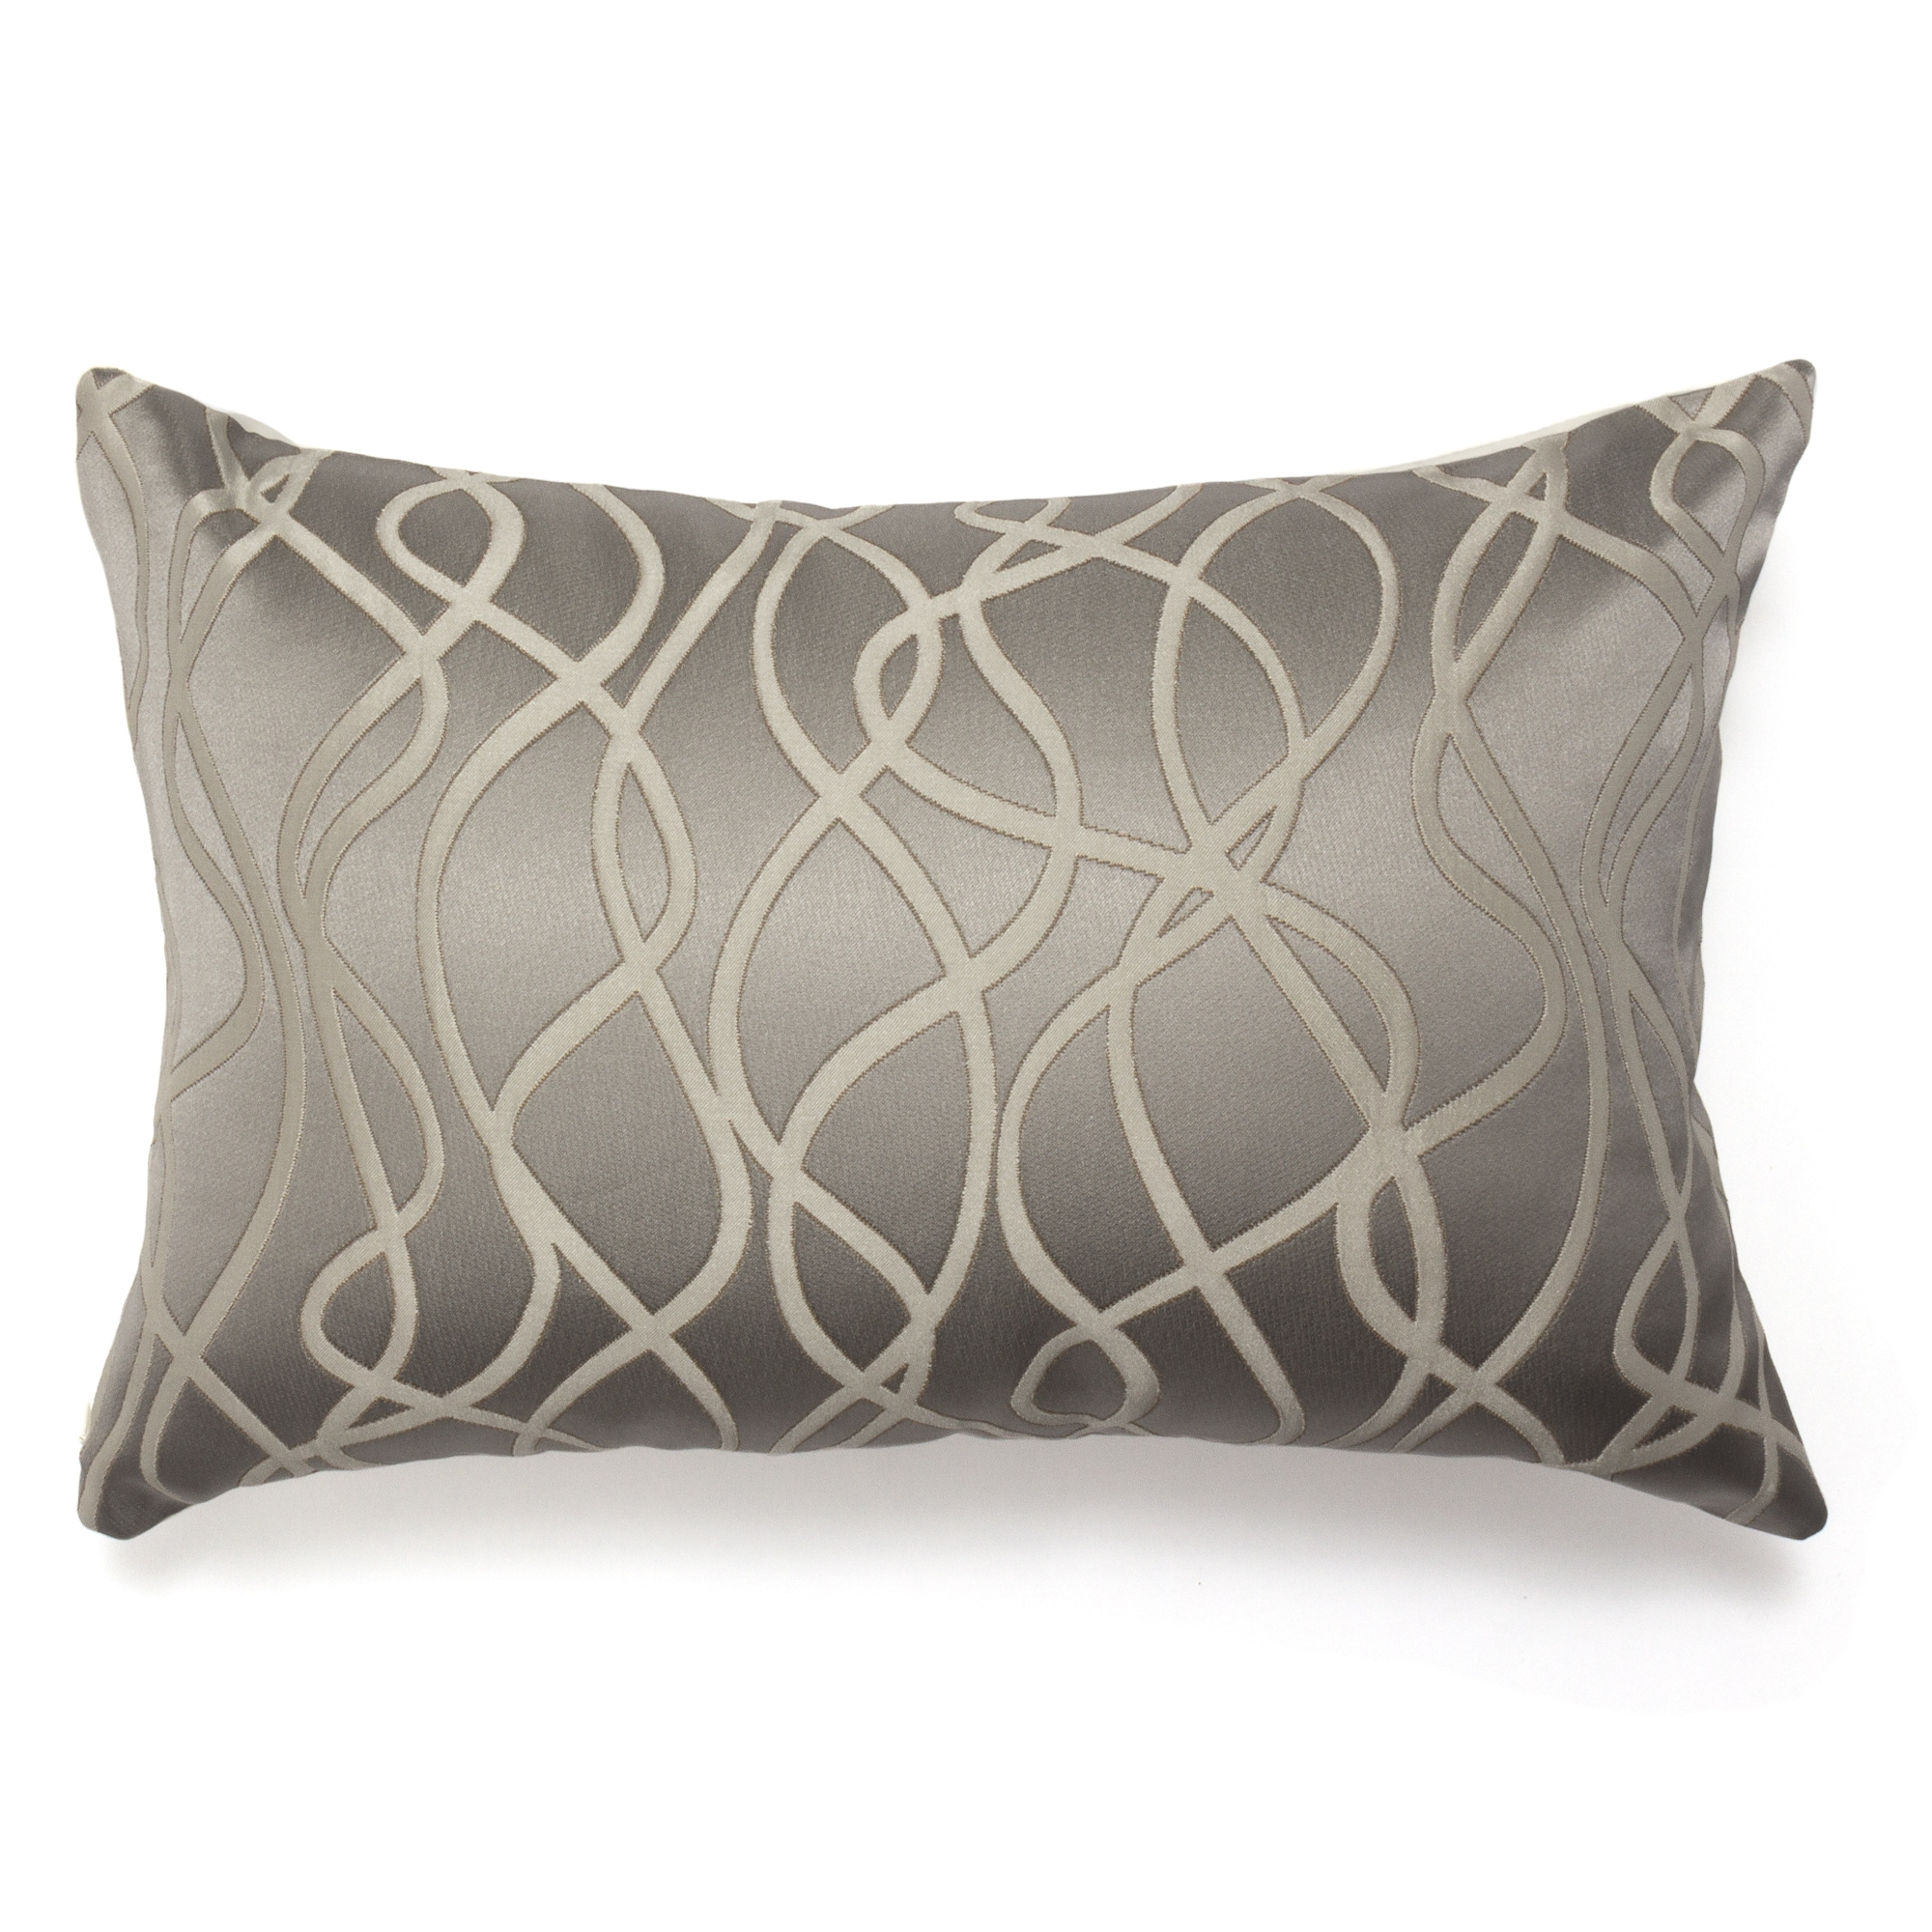 Bales Silver Decorative Bolster (Decorative Bolster), Gre...